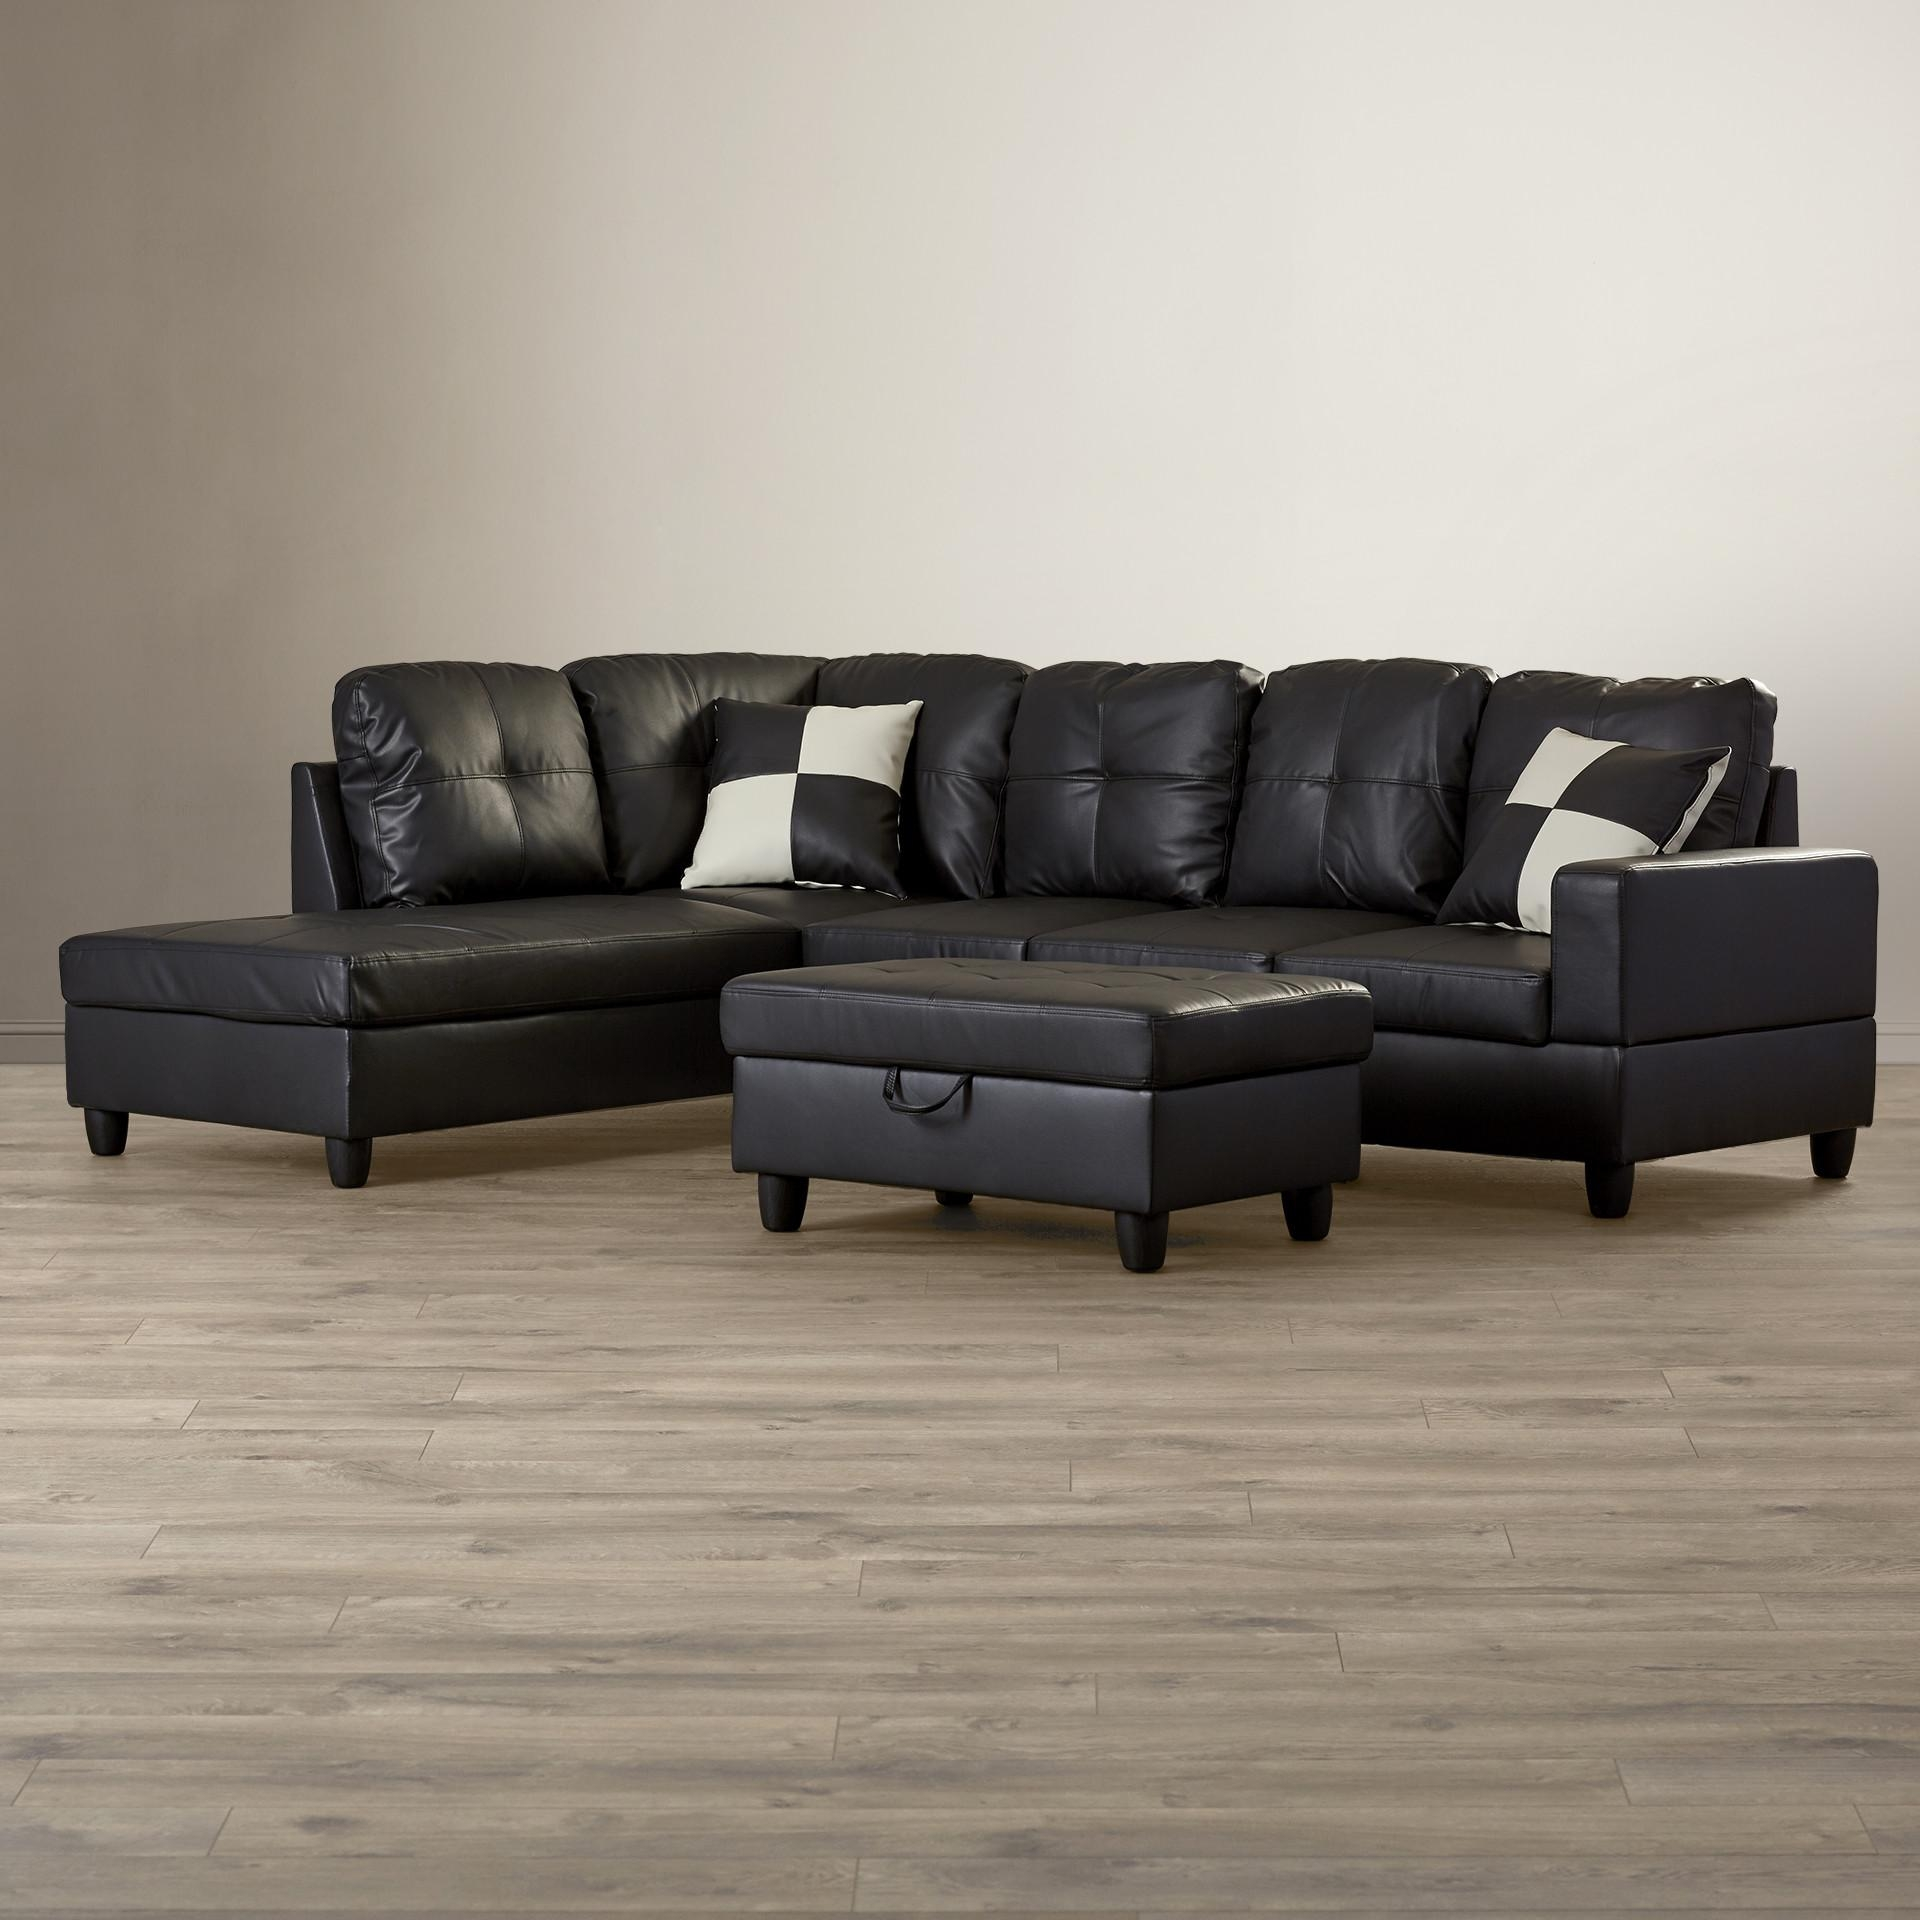 Furniture: Della Left Sectional Sofa With Storage Ottoman In Brown For Sectional Sofa With Storage (Image 6 of 20)